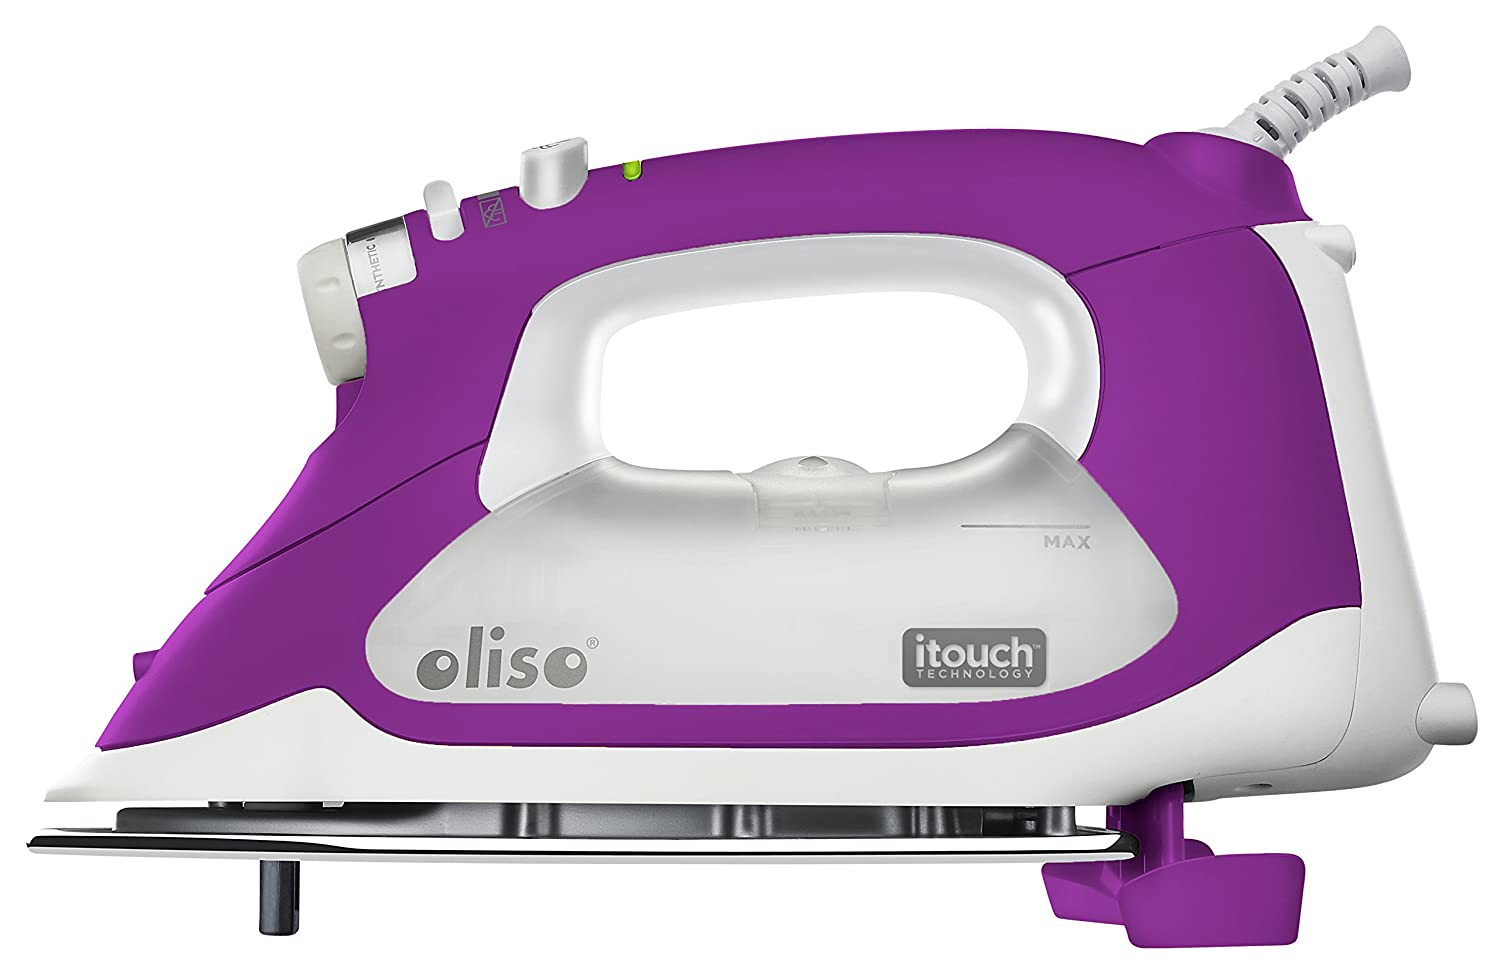 Oliso® TG1100 Smart Iron / Steam Iron- iTouch Self Lifting Technology - Auto Shut Off - Multiple Steam Iron Options - 1800W - Extra Long Cord 10